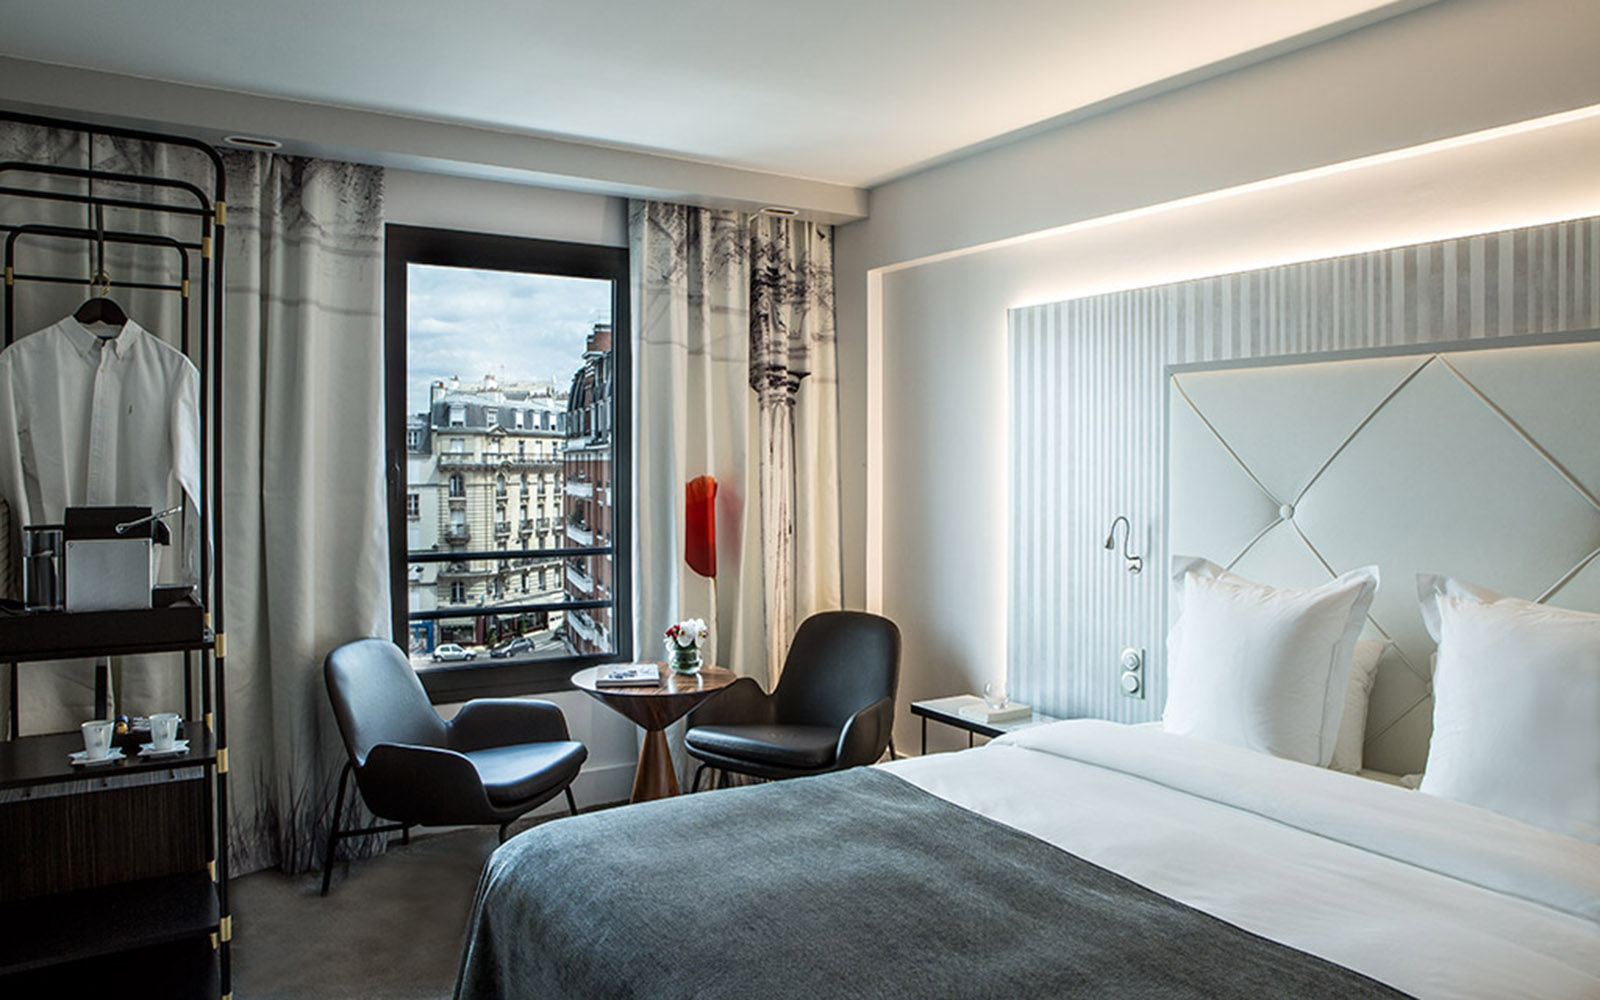 The welcoming atmosphere of the rooms at h tel le parisis are complemented by - Normann copenhagen paris ...